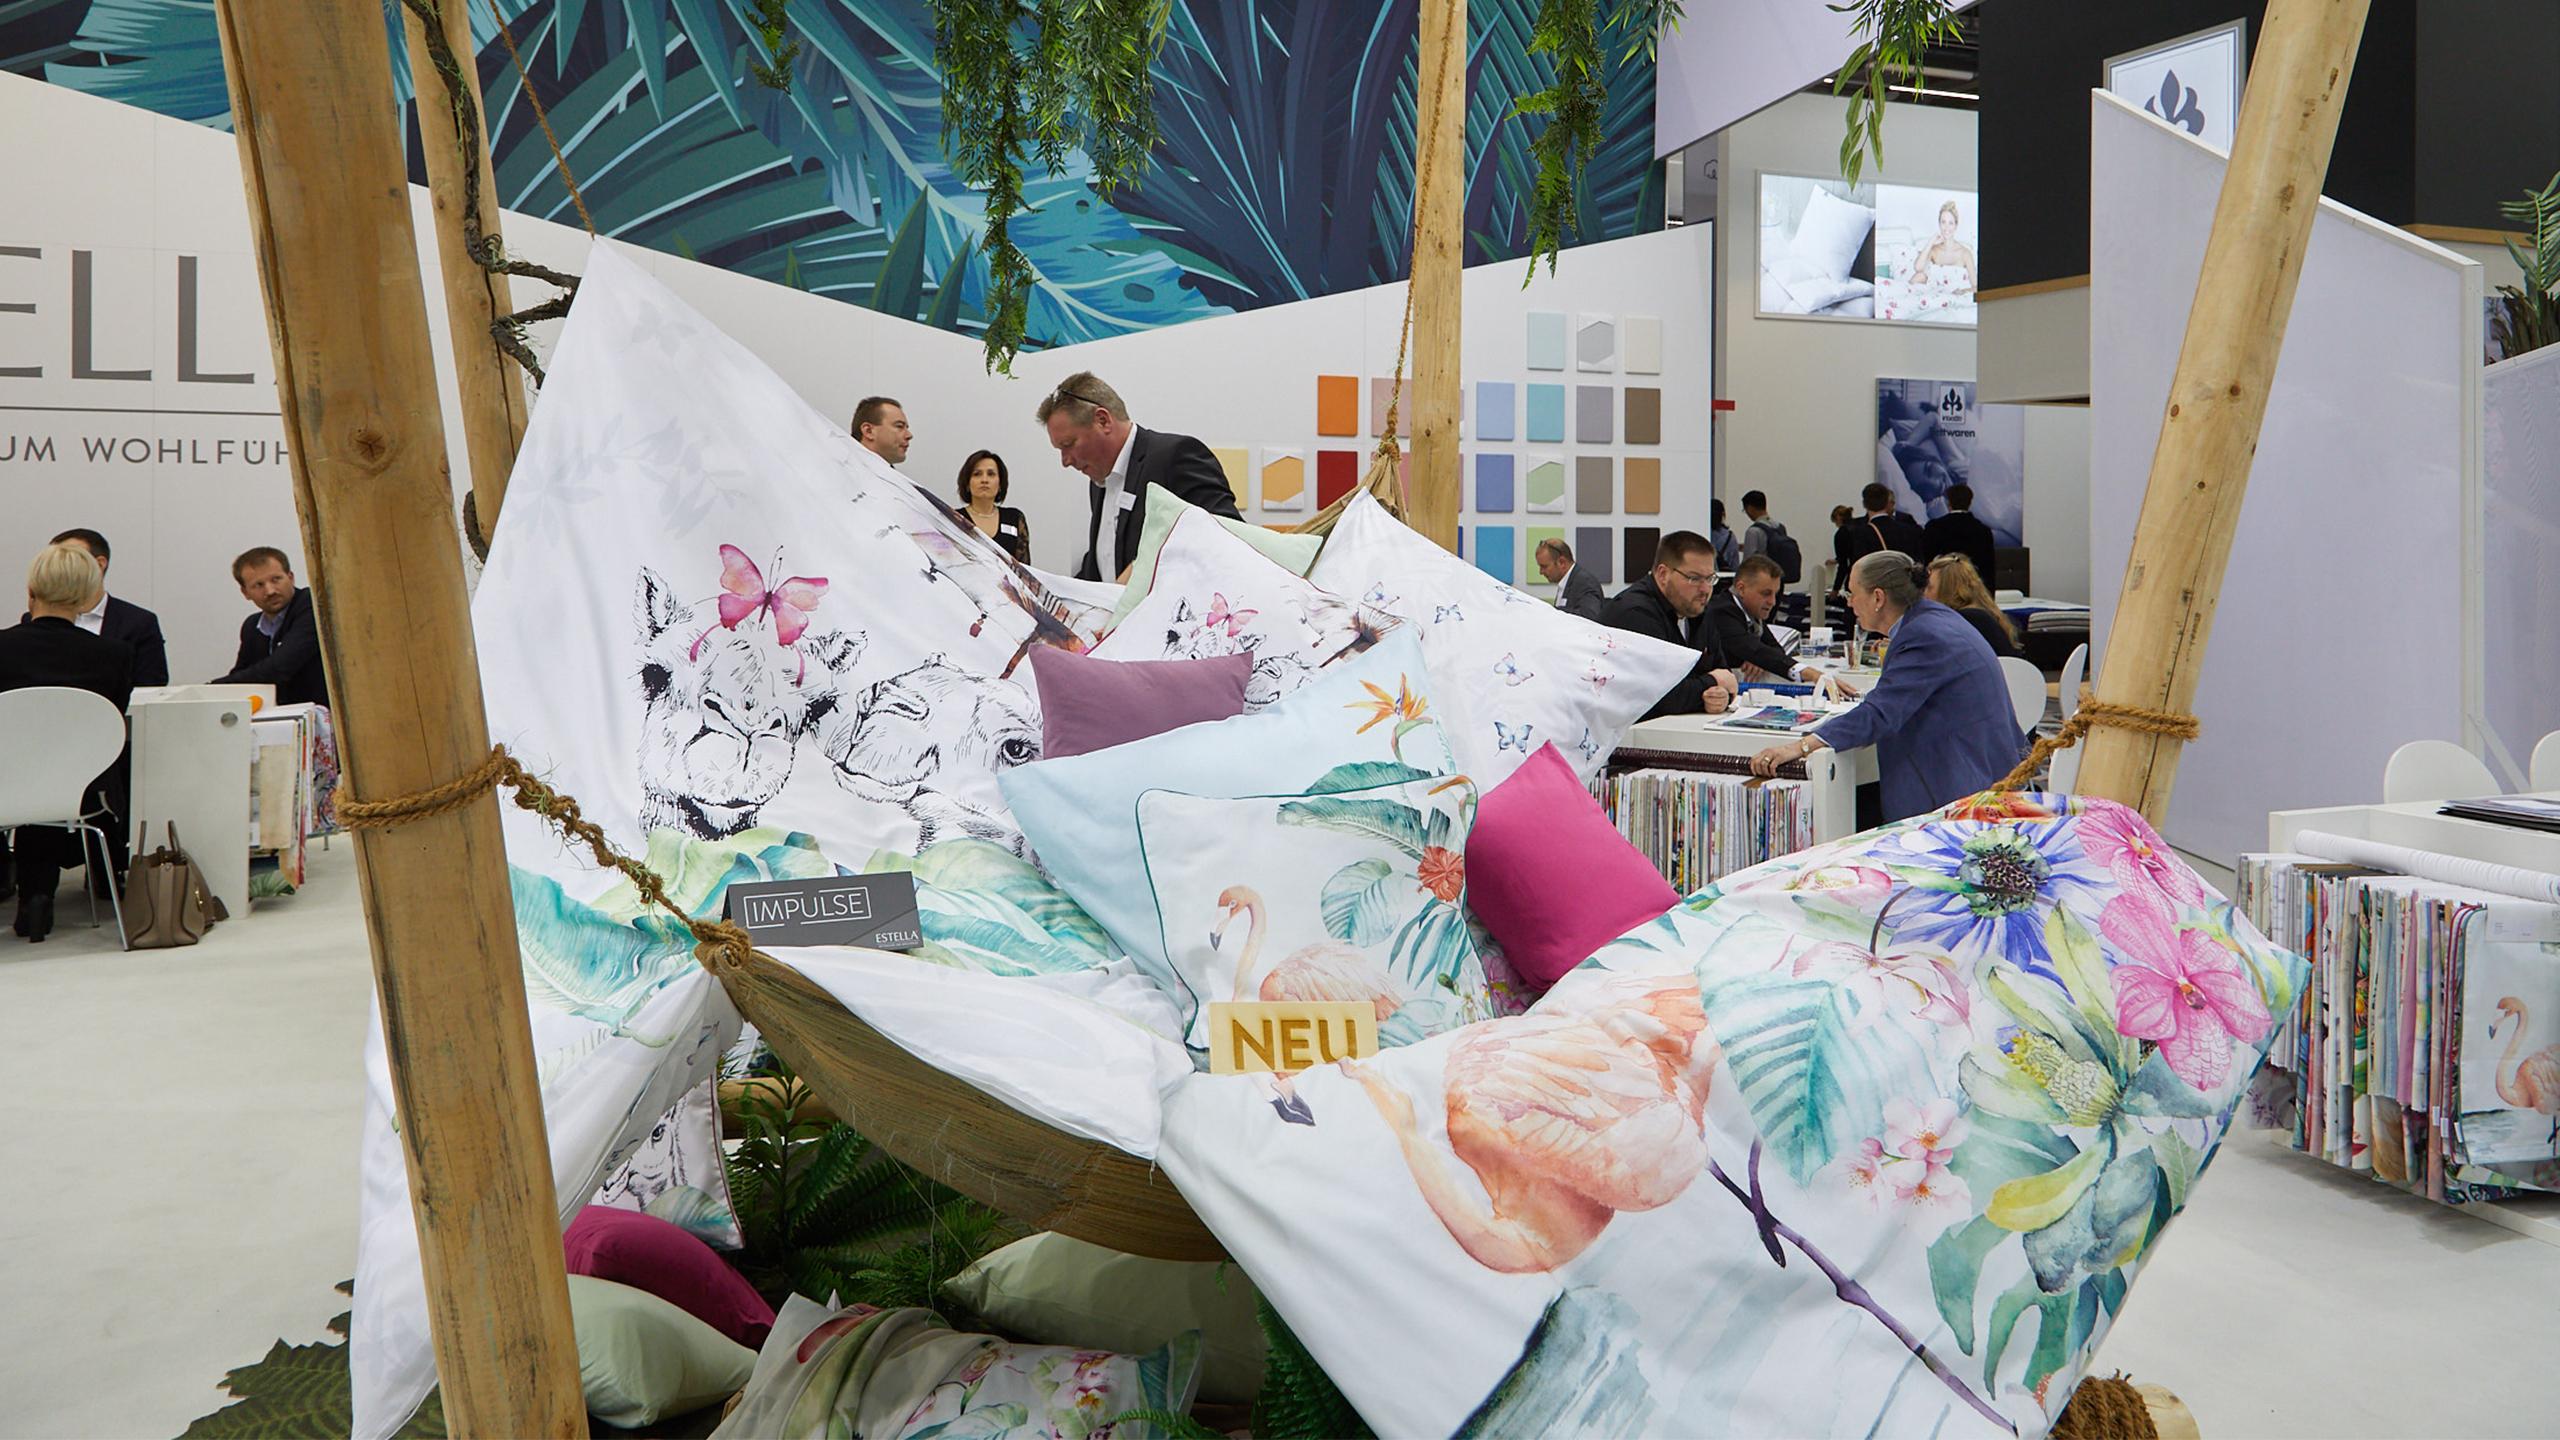 Pillows, a table and chairs at the Heimtextil 2019